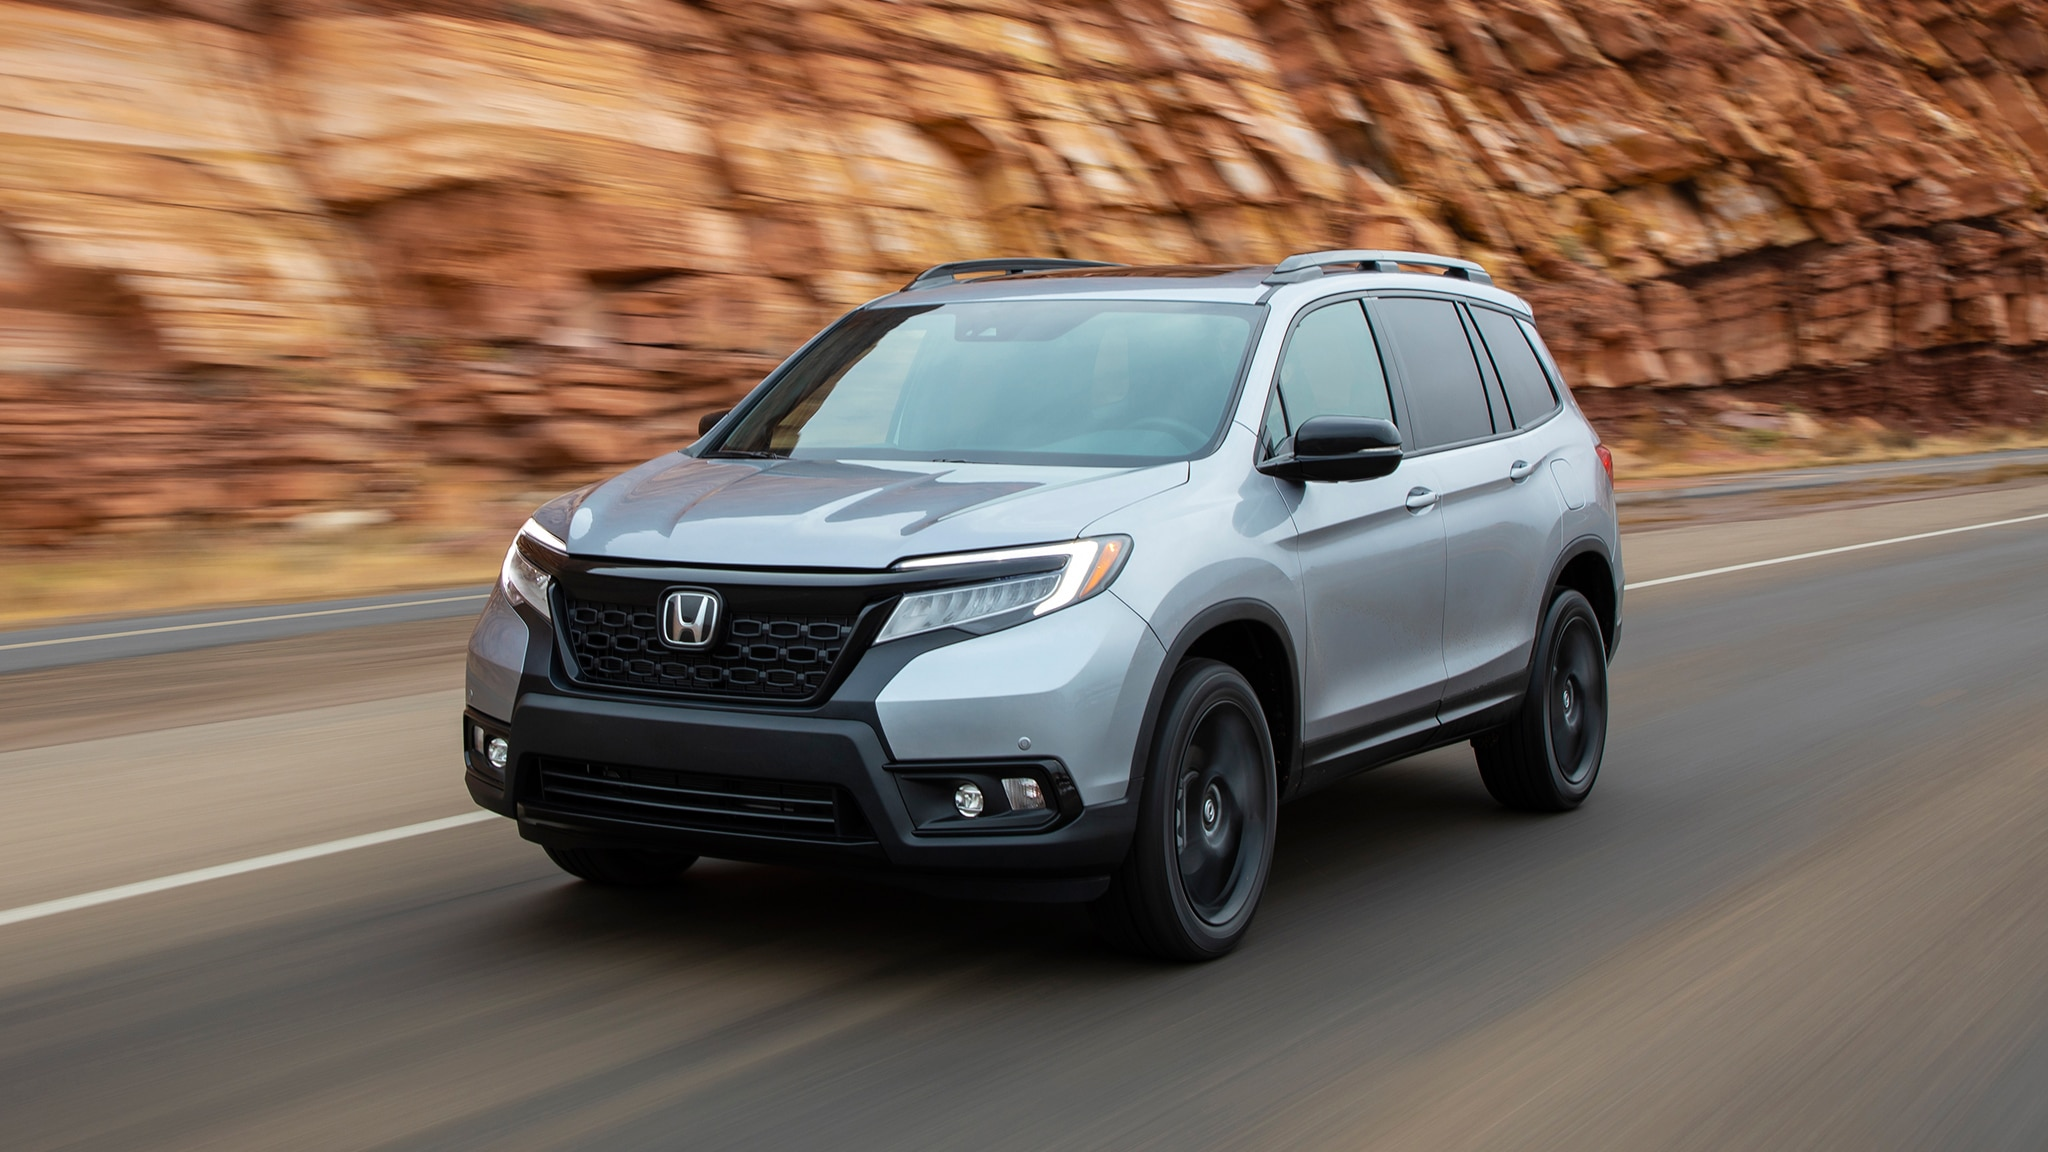 2019 Honda Passport Front Three Quarter In Motion 22